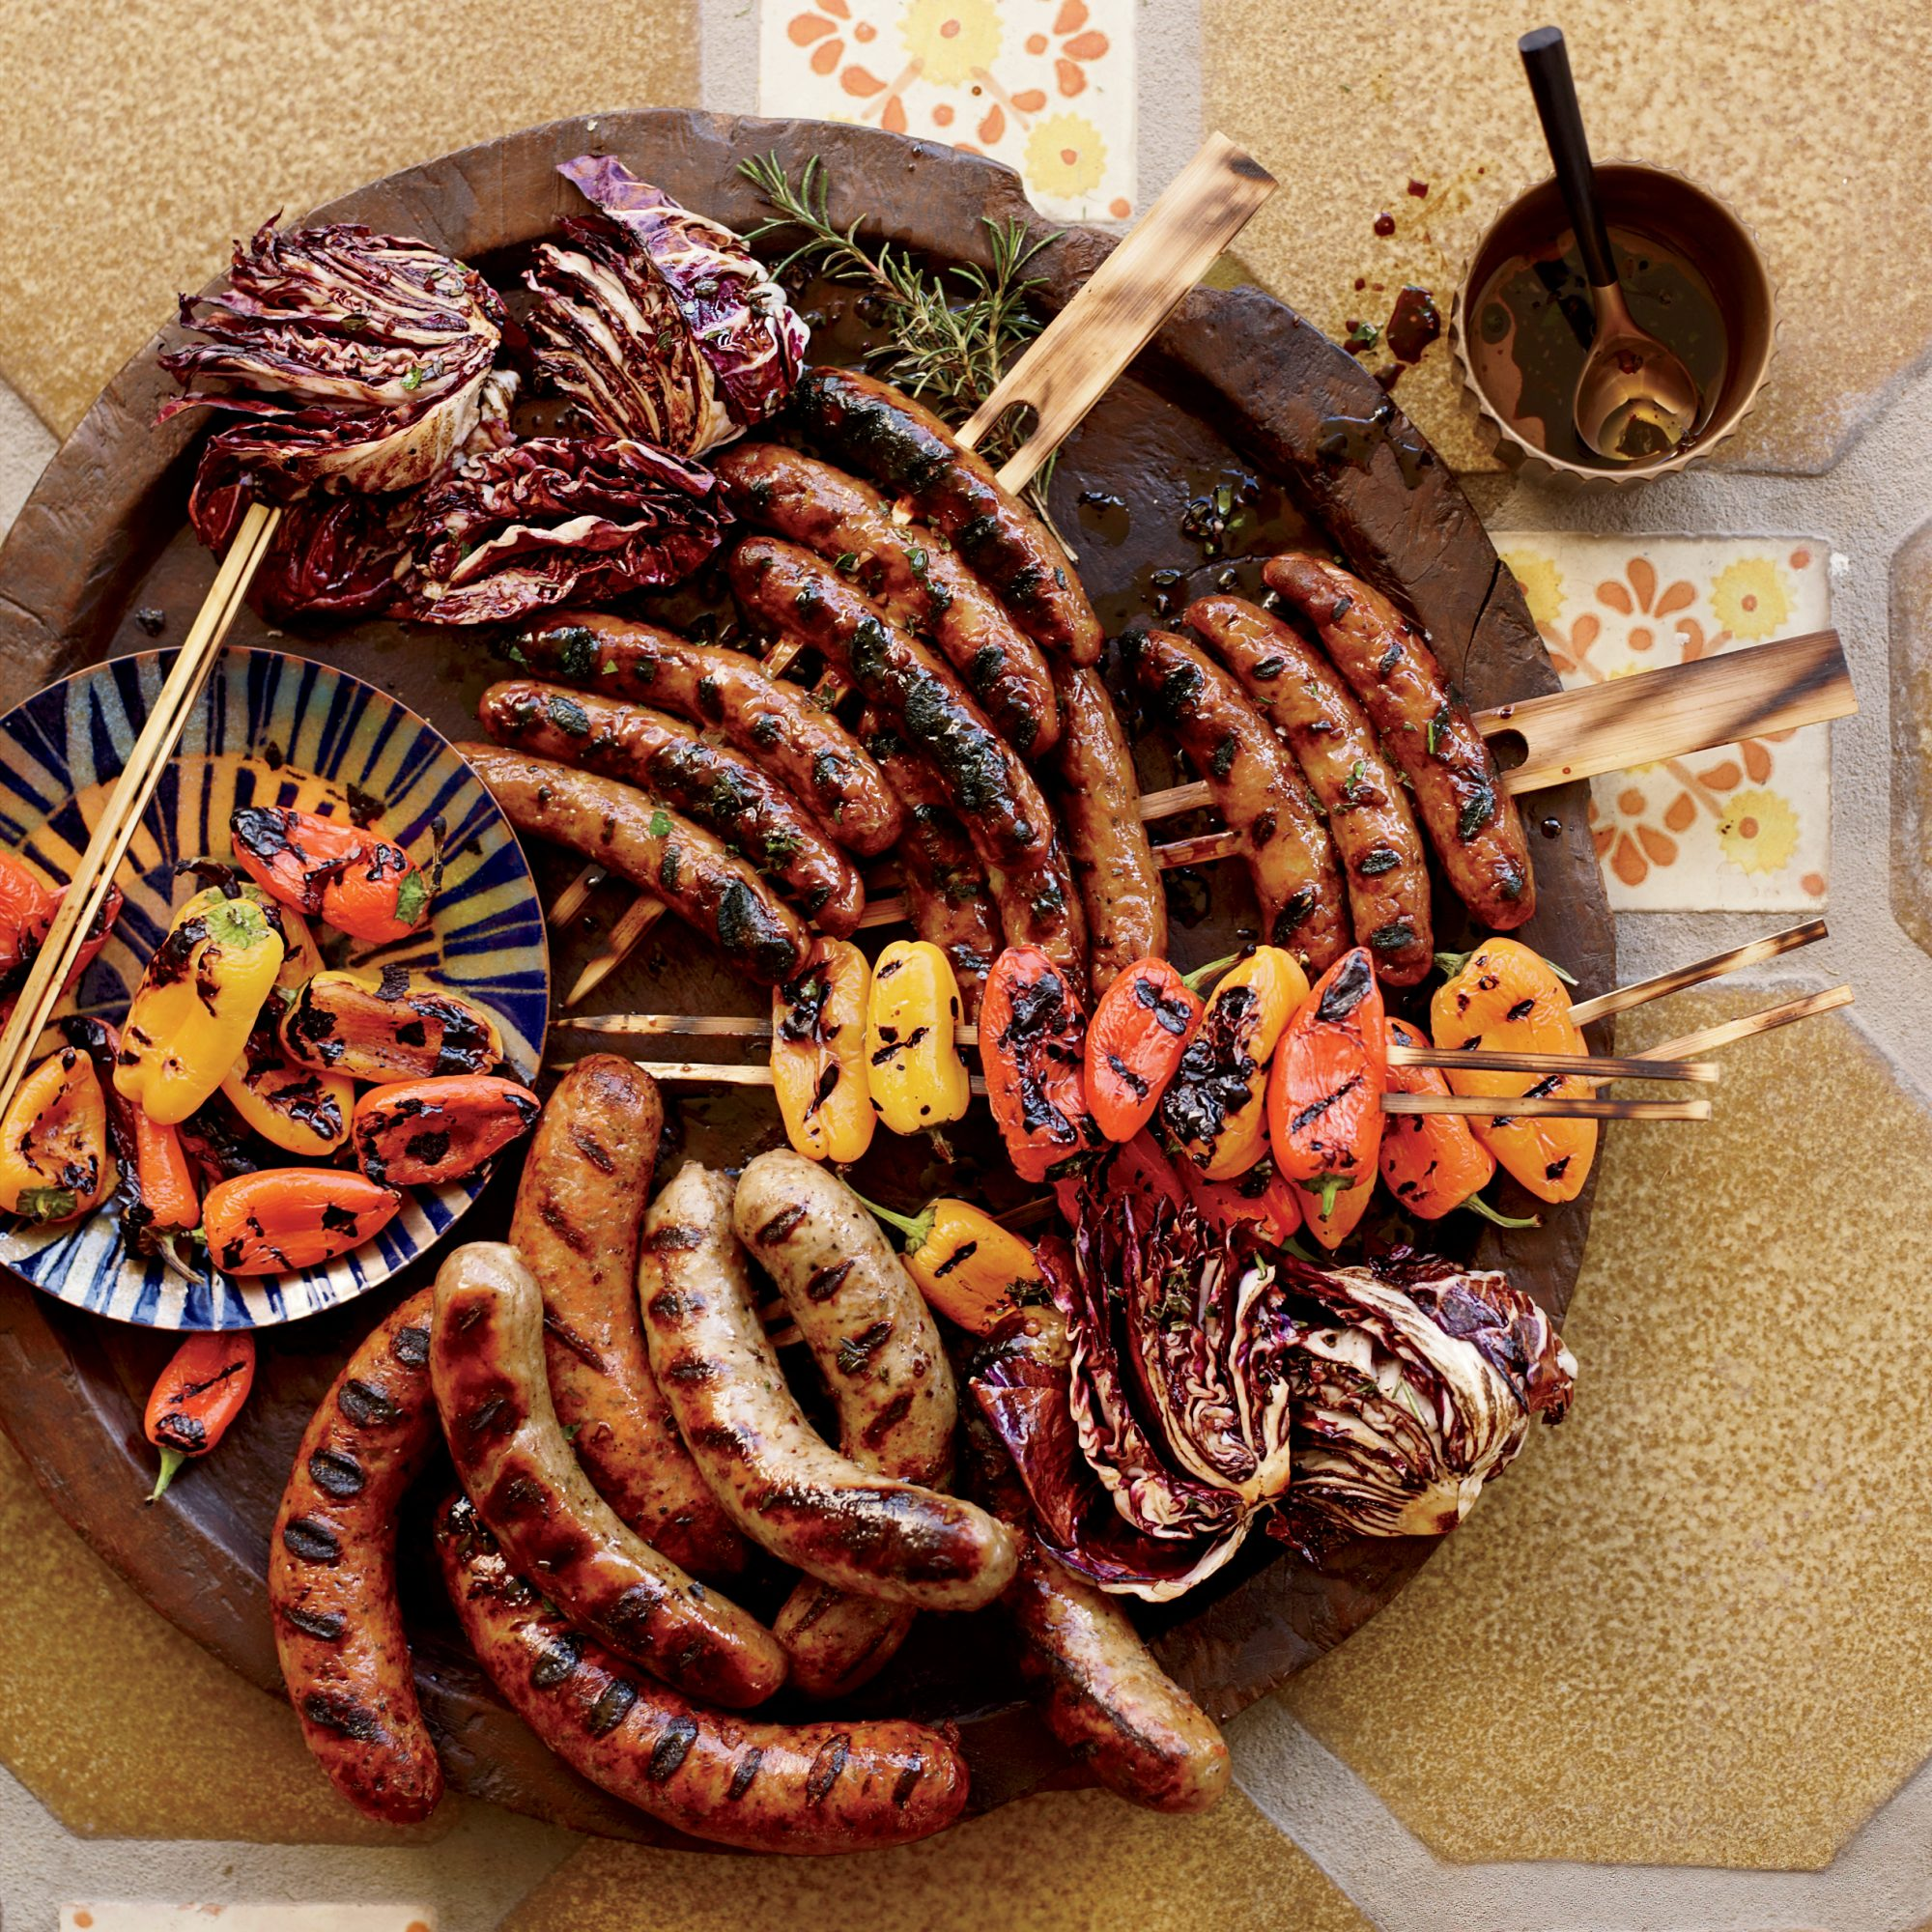 Sausage Mixed Grill Recipe - Marcia Kiesel